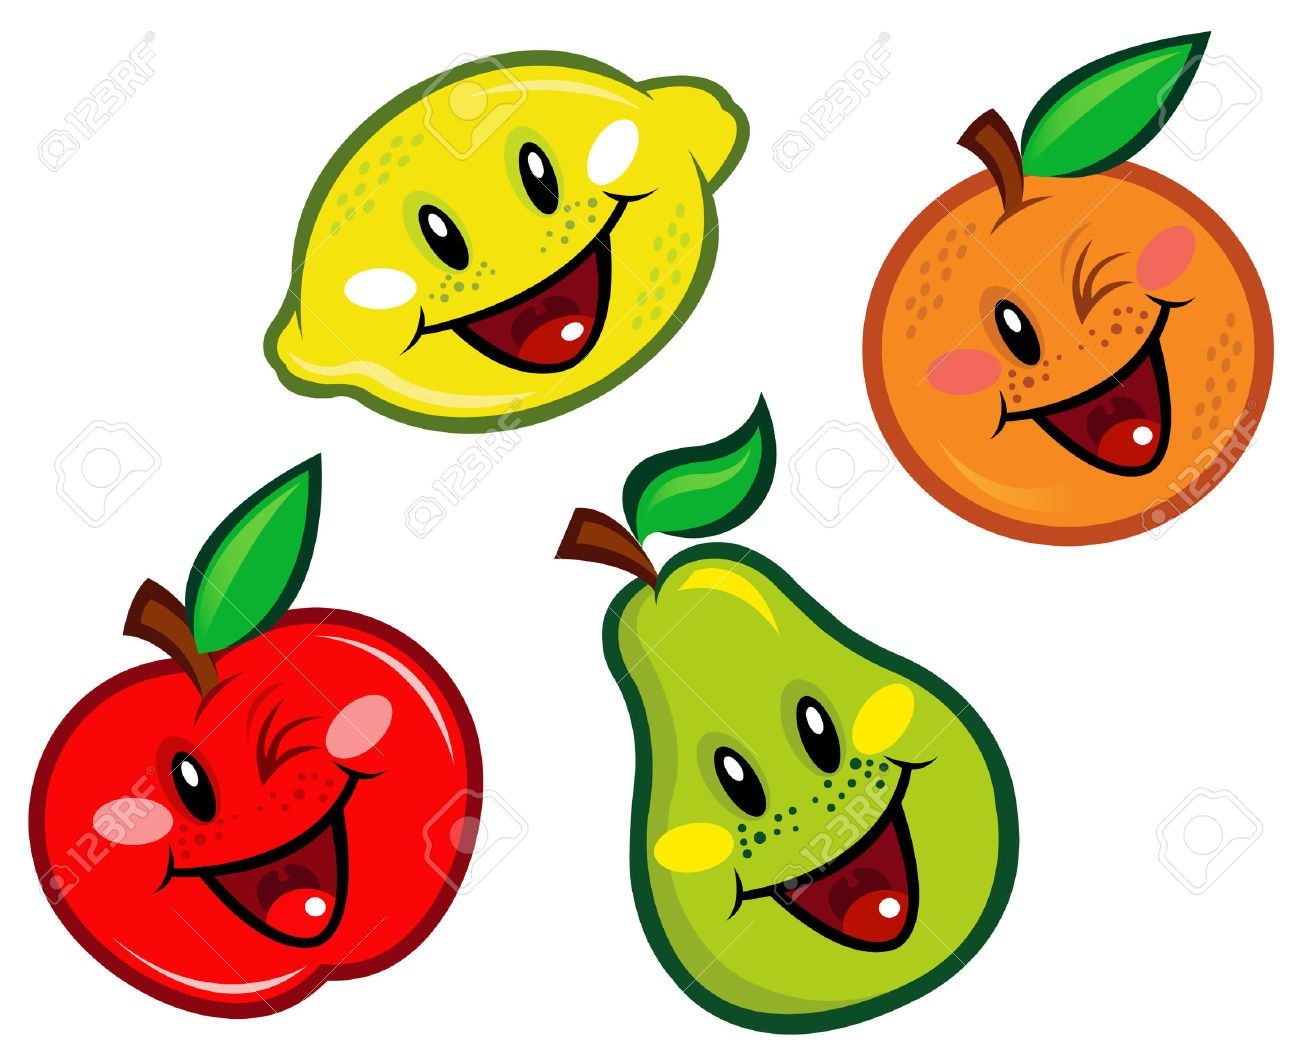 8777680-Happy-Fruits-Characters--Stock-Vector-fruits